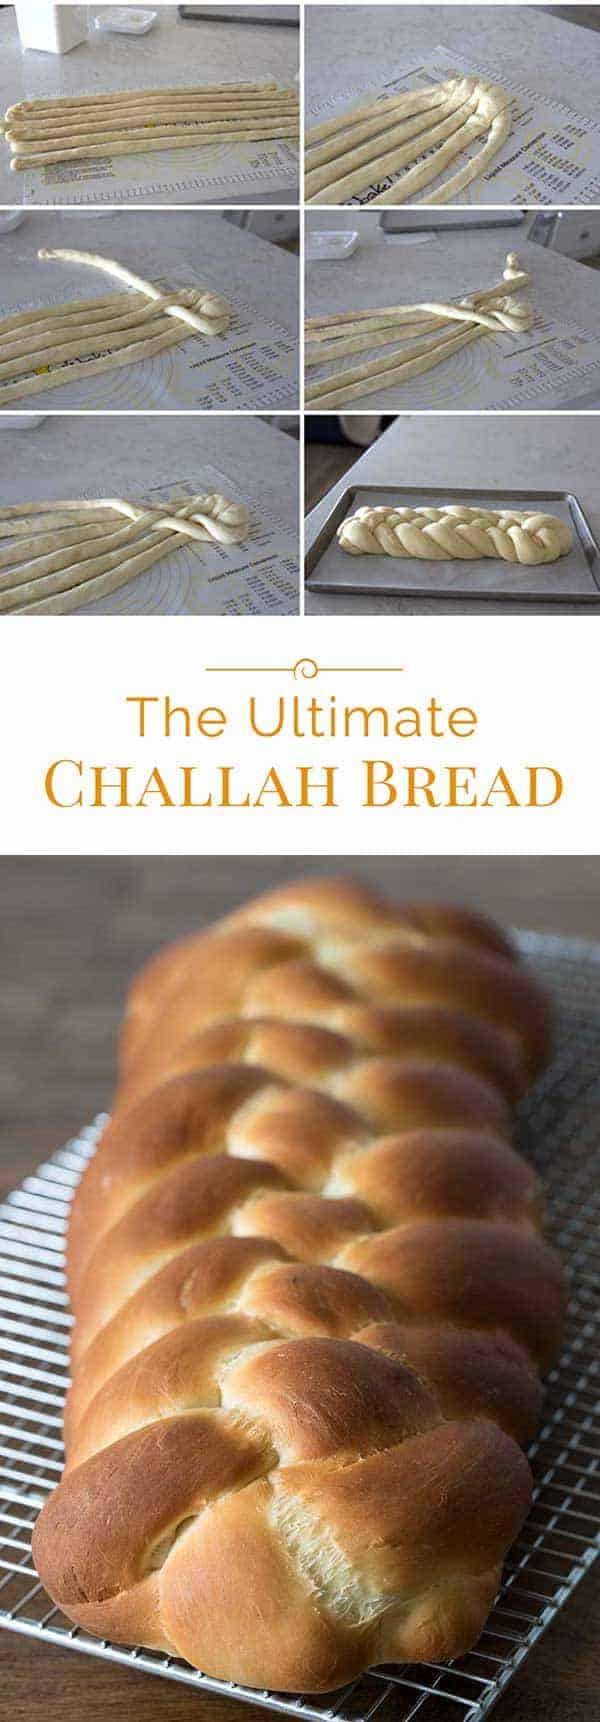 Challah is a rich, buttery bread made for the Jewish Sabbath. This Ultimate Challah Bread recipe is based on a recipe handed down from one generation to another.